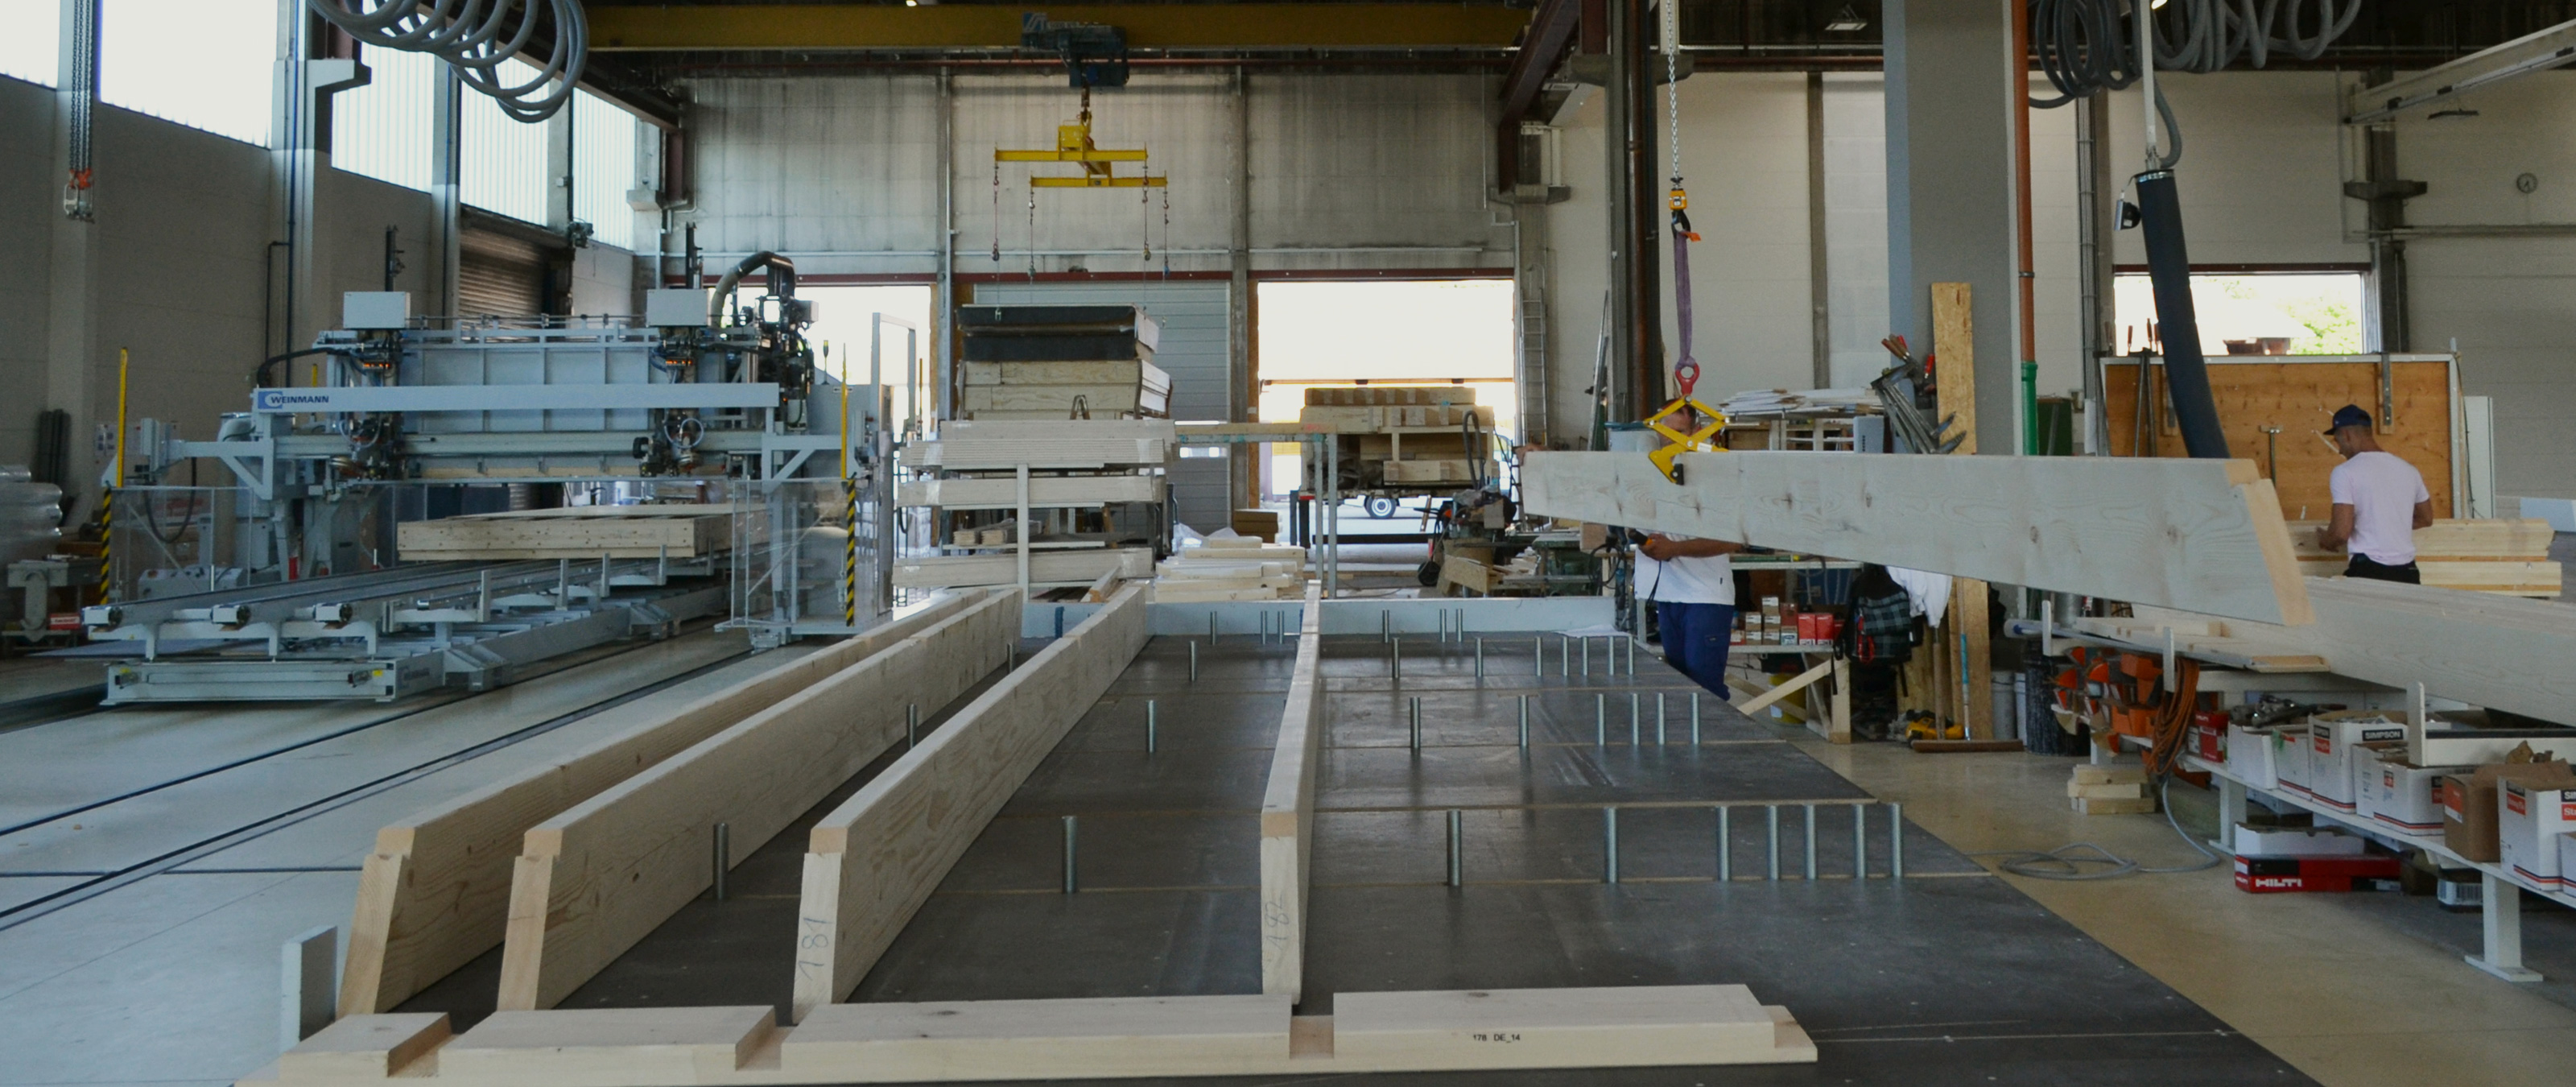 WEINMANN Roof and ceiling production line for prefabricated houses with nailing bridges and framingtables